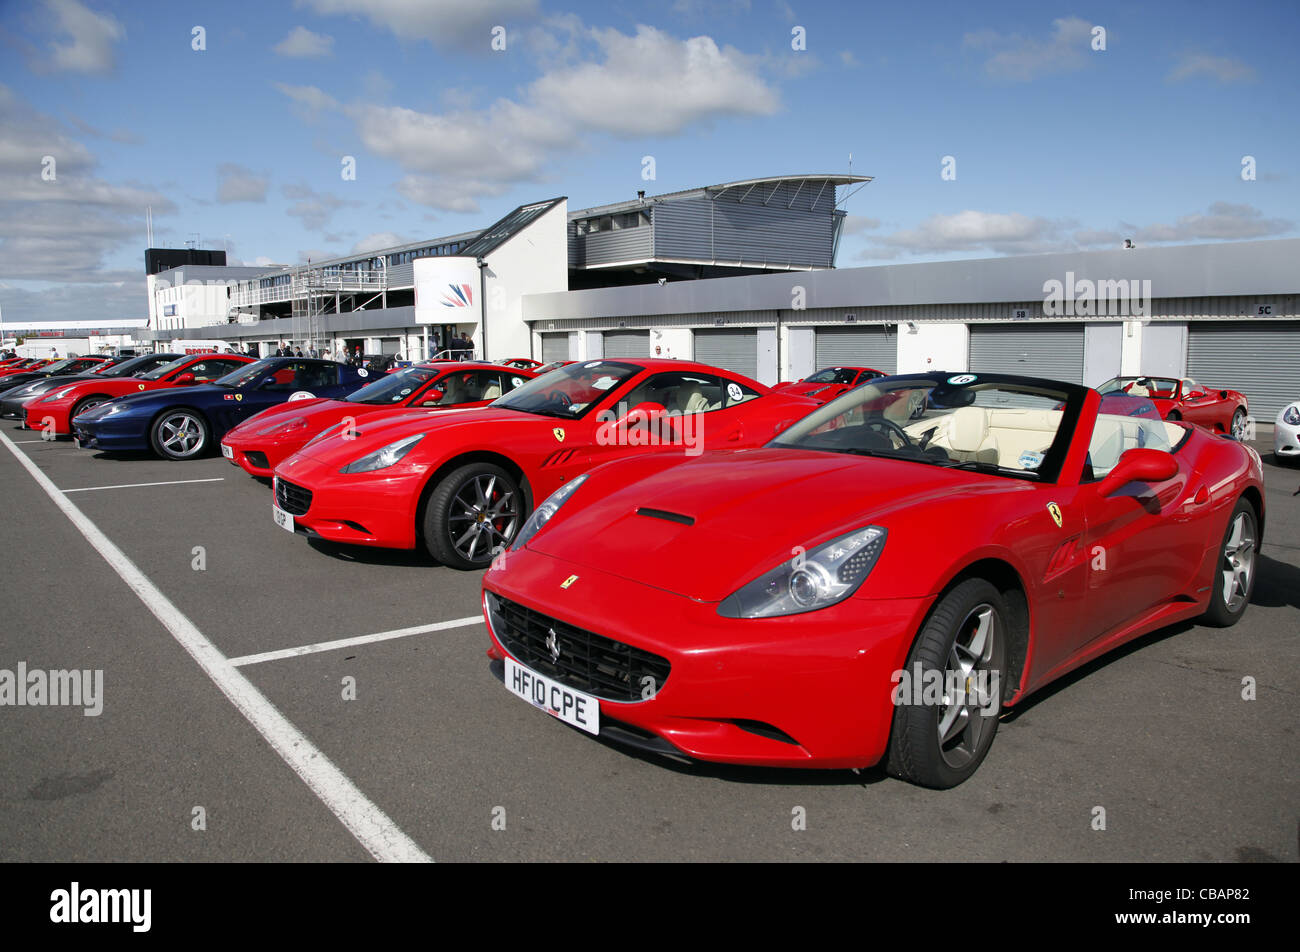 Red Circuit Stock Photos Images Alamy Ferrari California Fuse Box Car Silverstone England 14 September 2011 Image